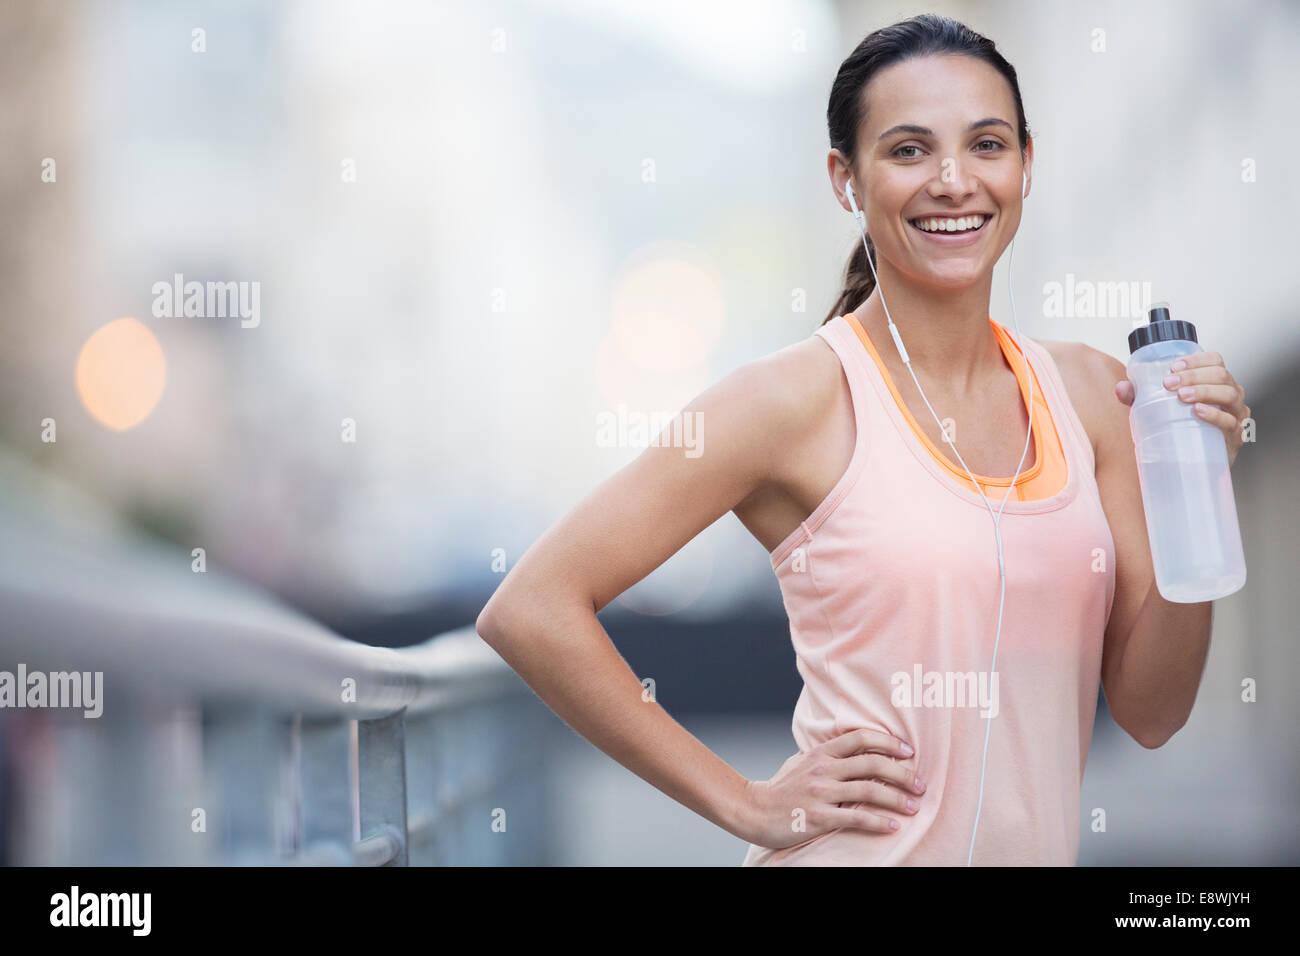 Woman drinking water outdoors - Stock Image